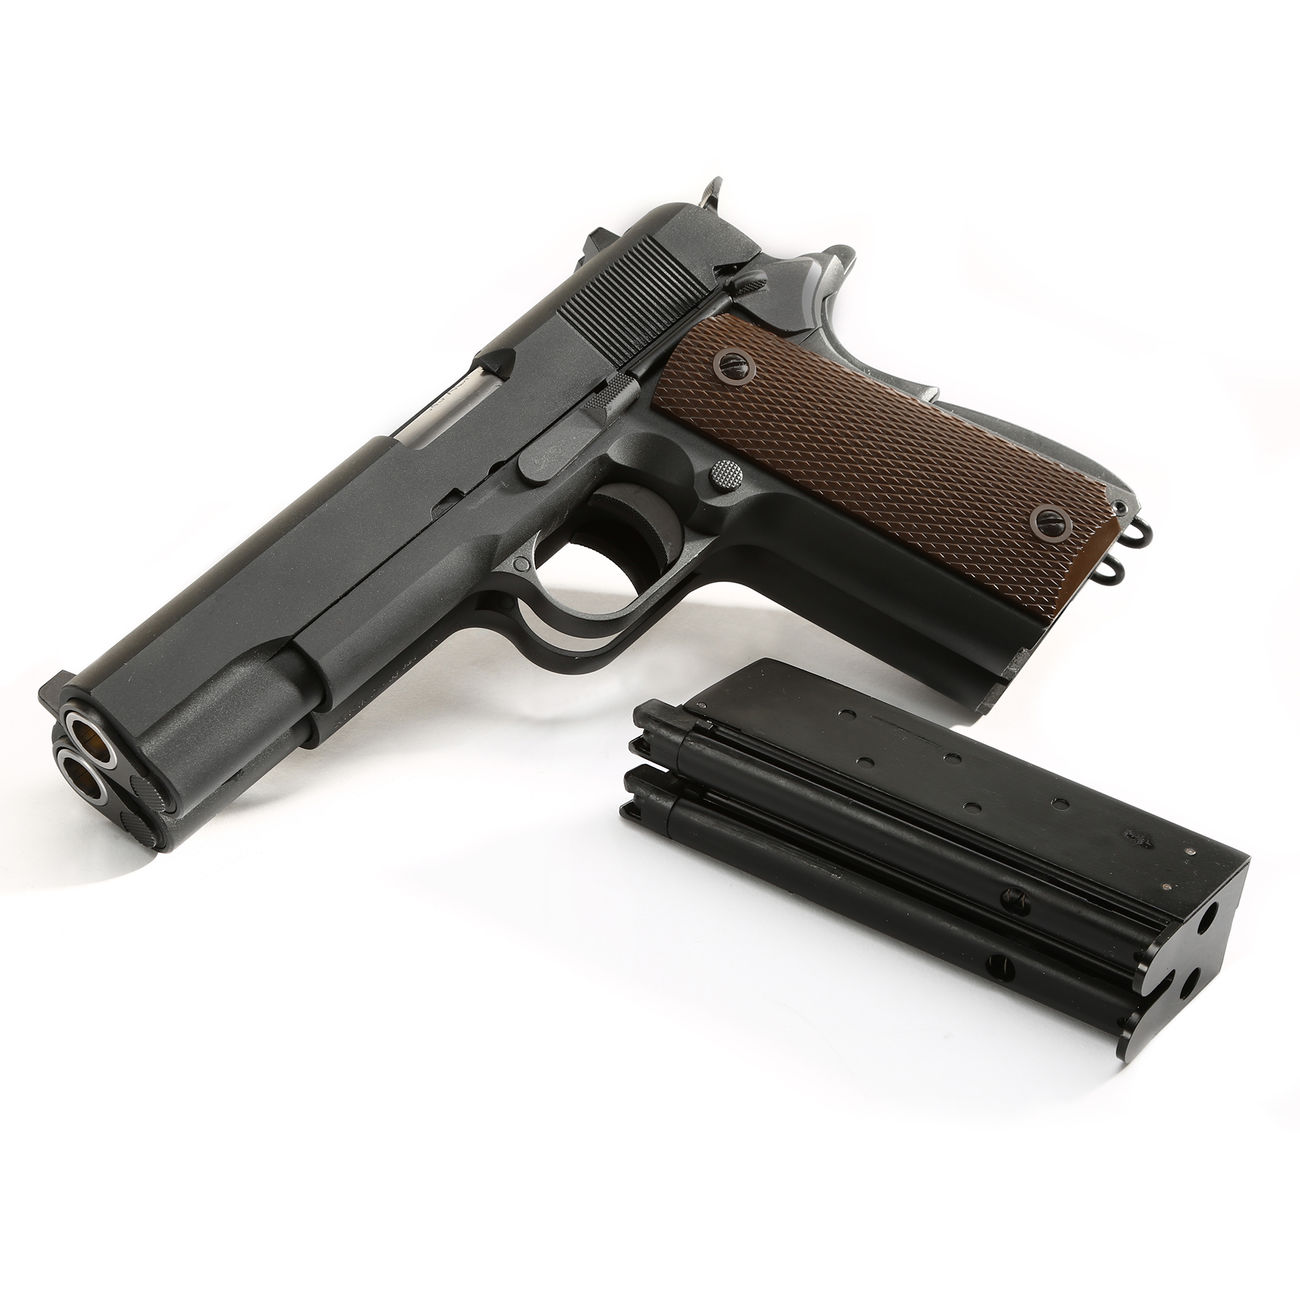 Wei-ETech M1911 Double Barrel Vollmetall GBB 6mm BB schwarz 4